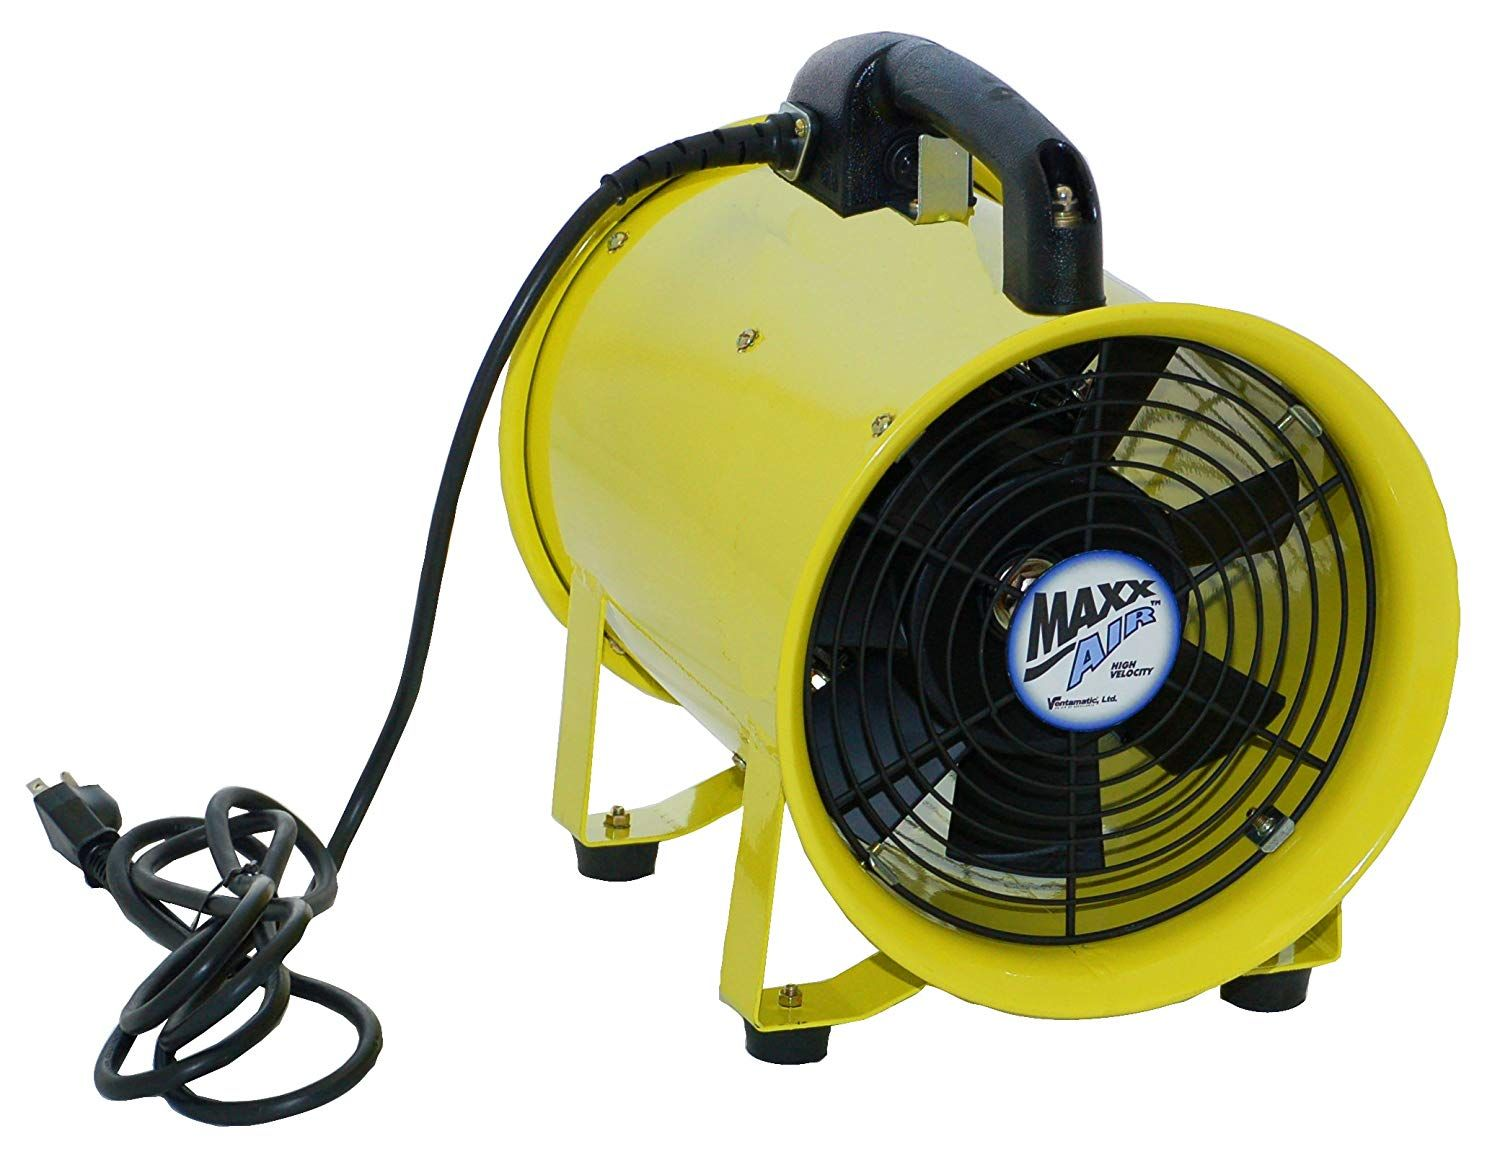 Maxxair Hvhf 12fan Heavy Duty 12 Inch Cylinder 900 Cfm Fan You Can Get Additional Details At The Image Link This Is Fans For Sale Outdoor Fan Blower Fans